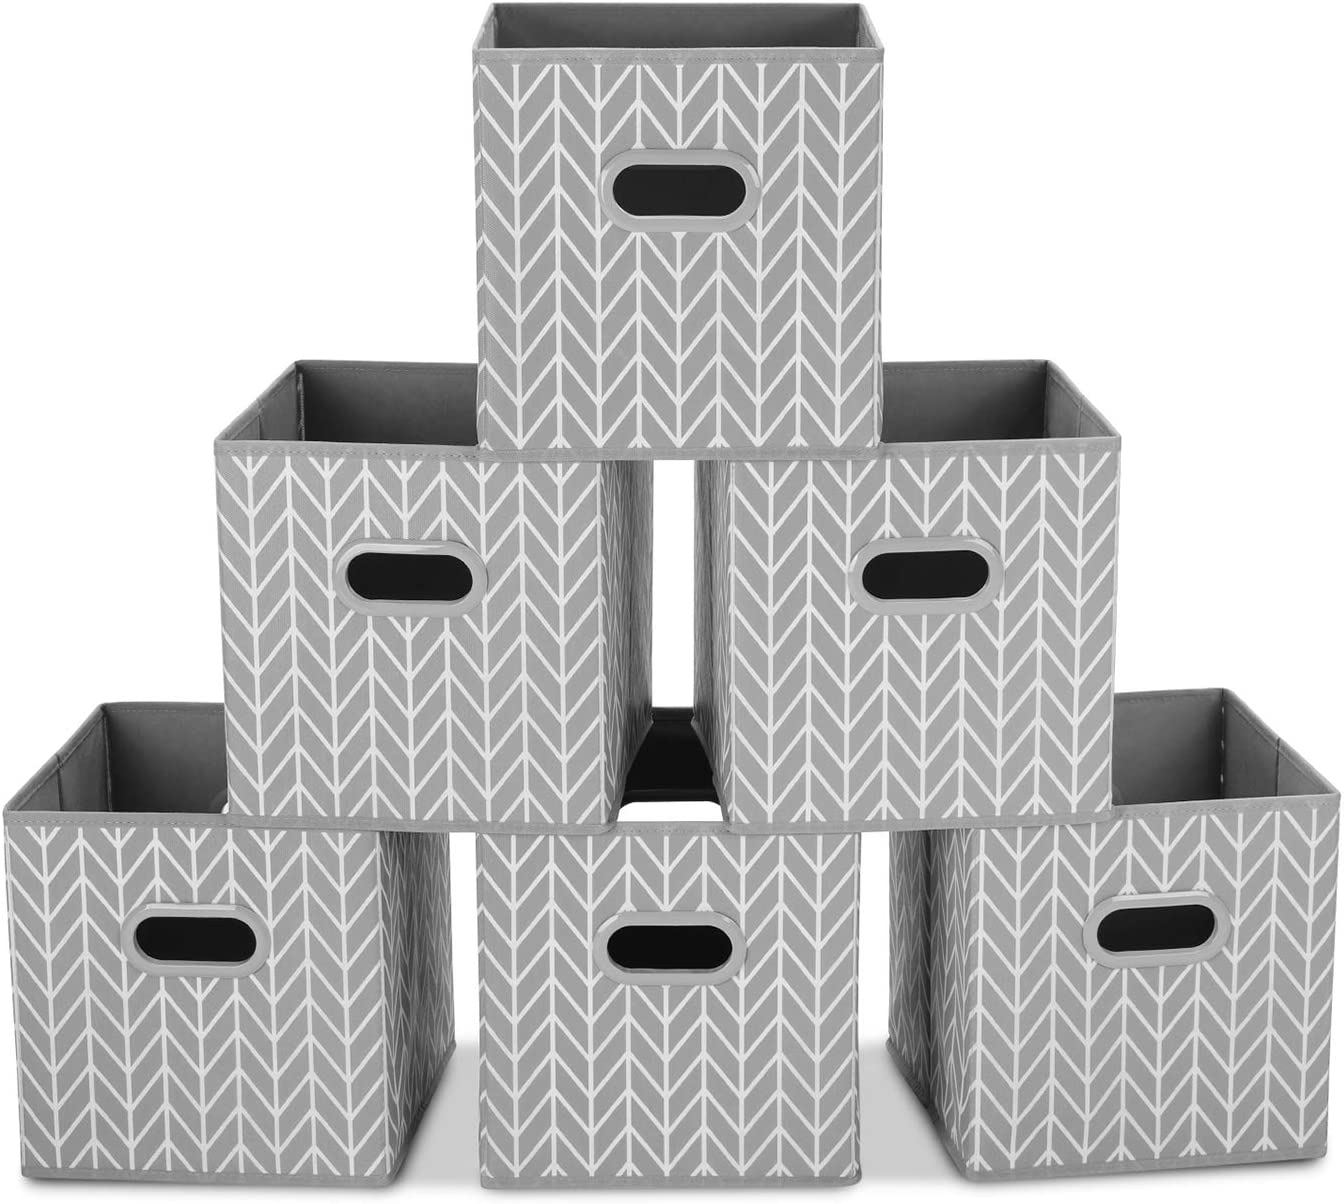 MaidMAX Cloth Storage Bins Foldable Storage Cubes Baskets with Dual Plastic Handles for Home Office Nursery Drawers Organizers 10.5/×10.5/×11 inches Gray Set of 6 Cube Organizer Bins